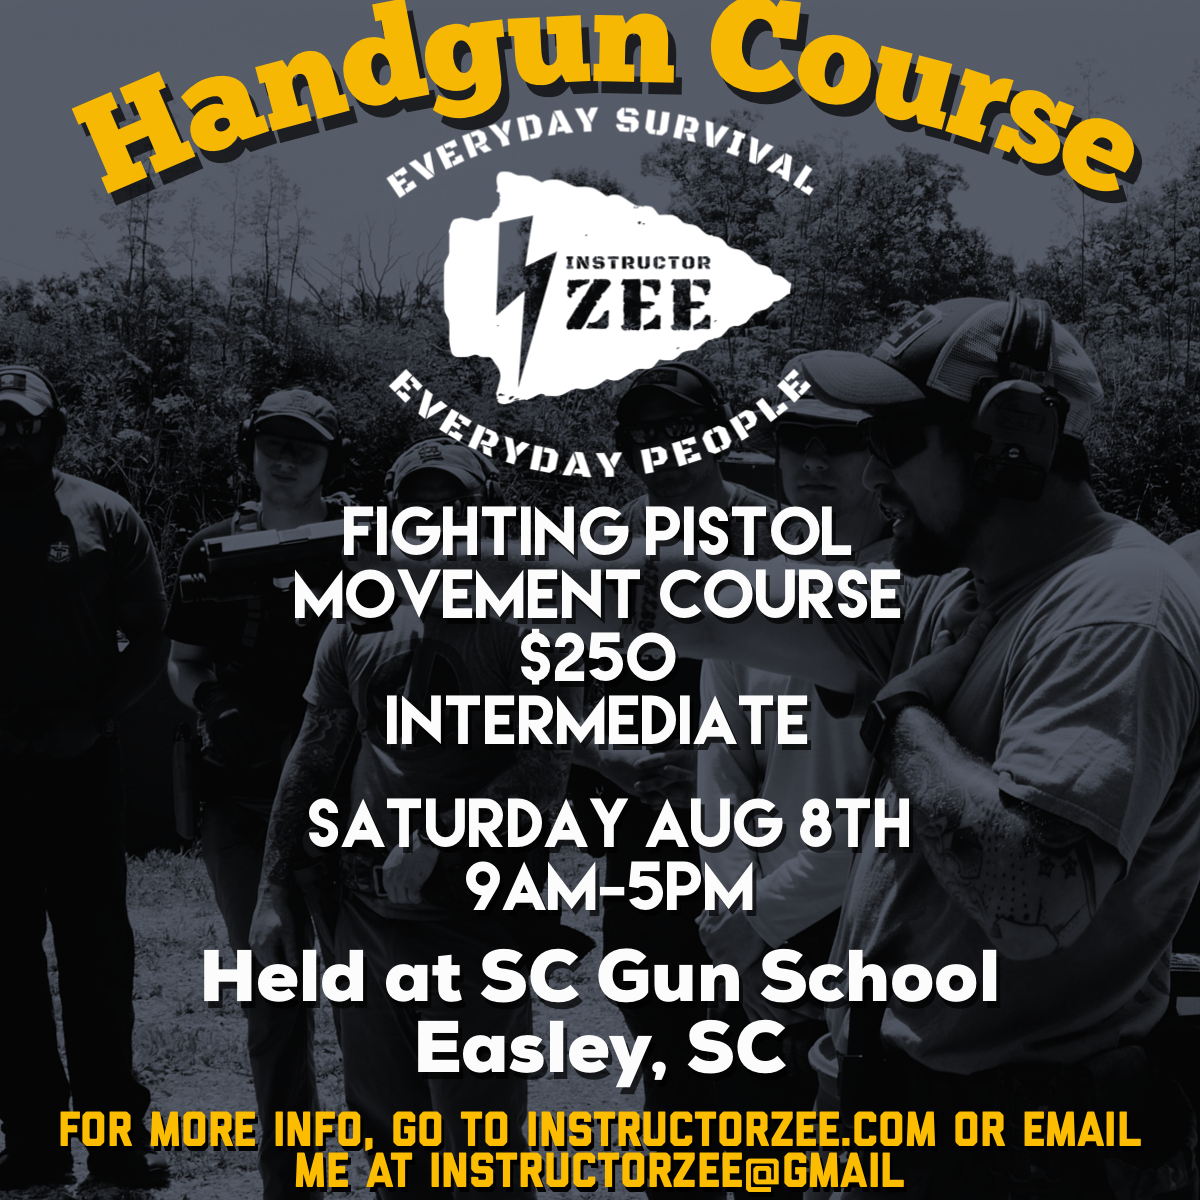 instructor zee South Carolina gun handgun pistol training class course tactical defensive Easley fighting